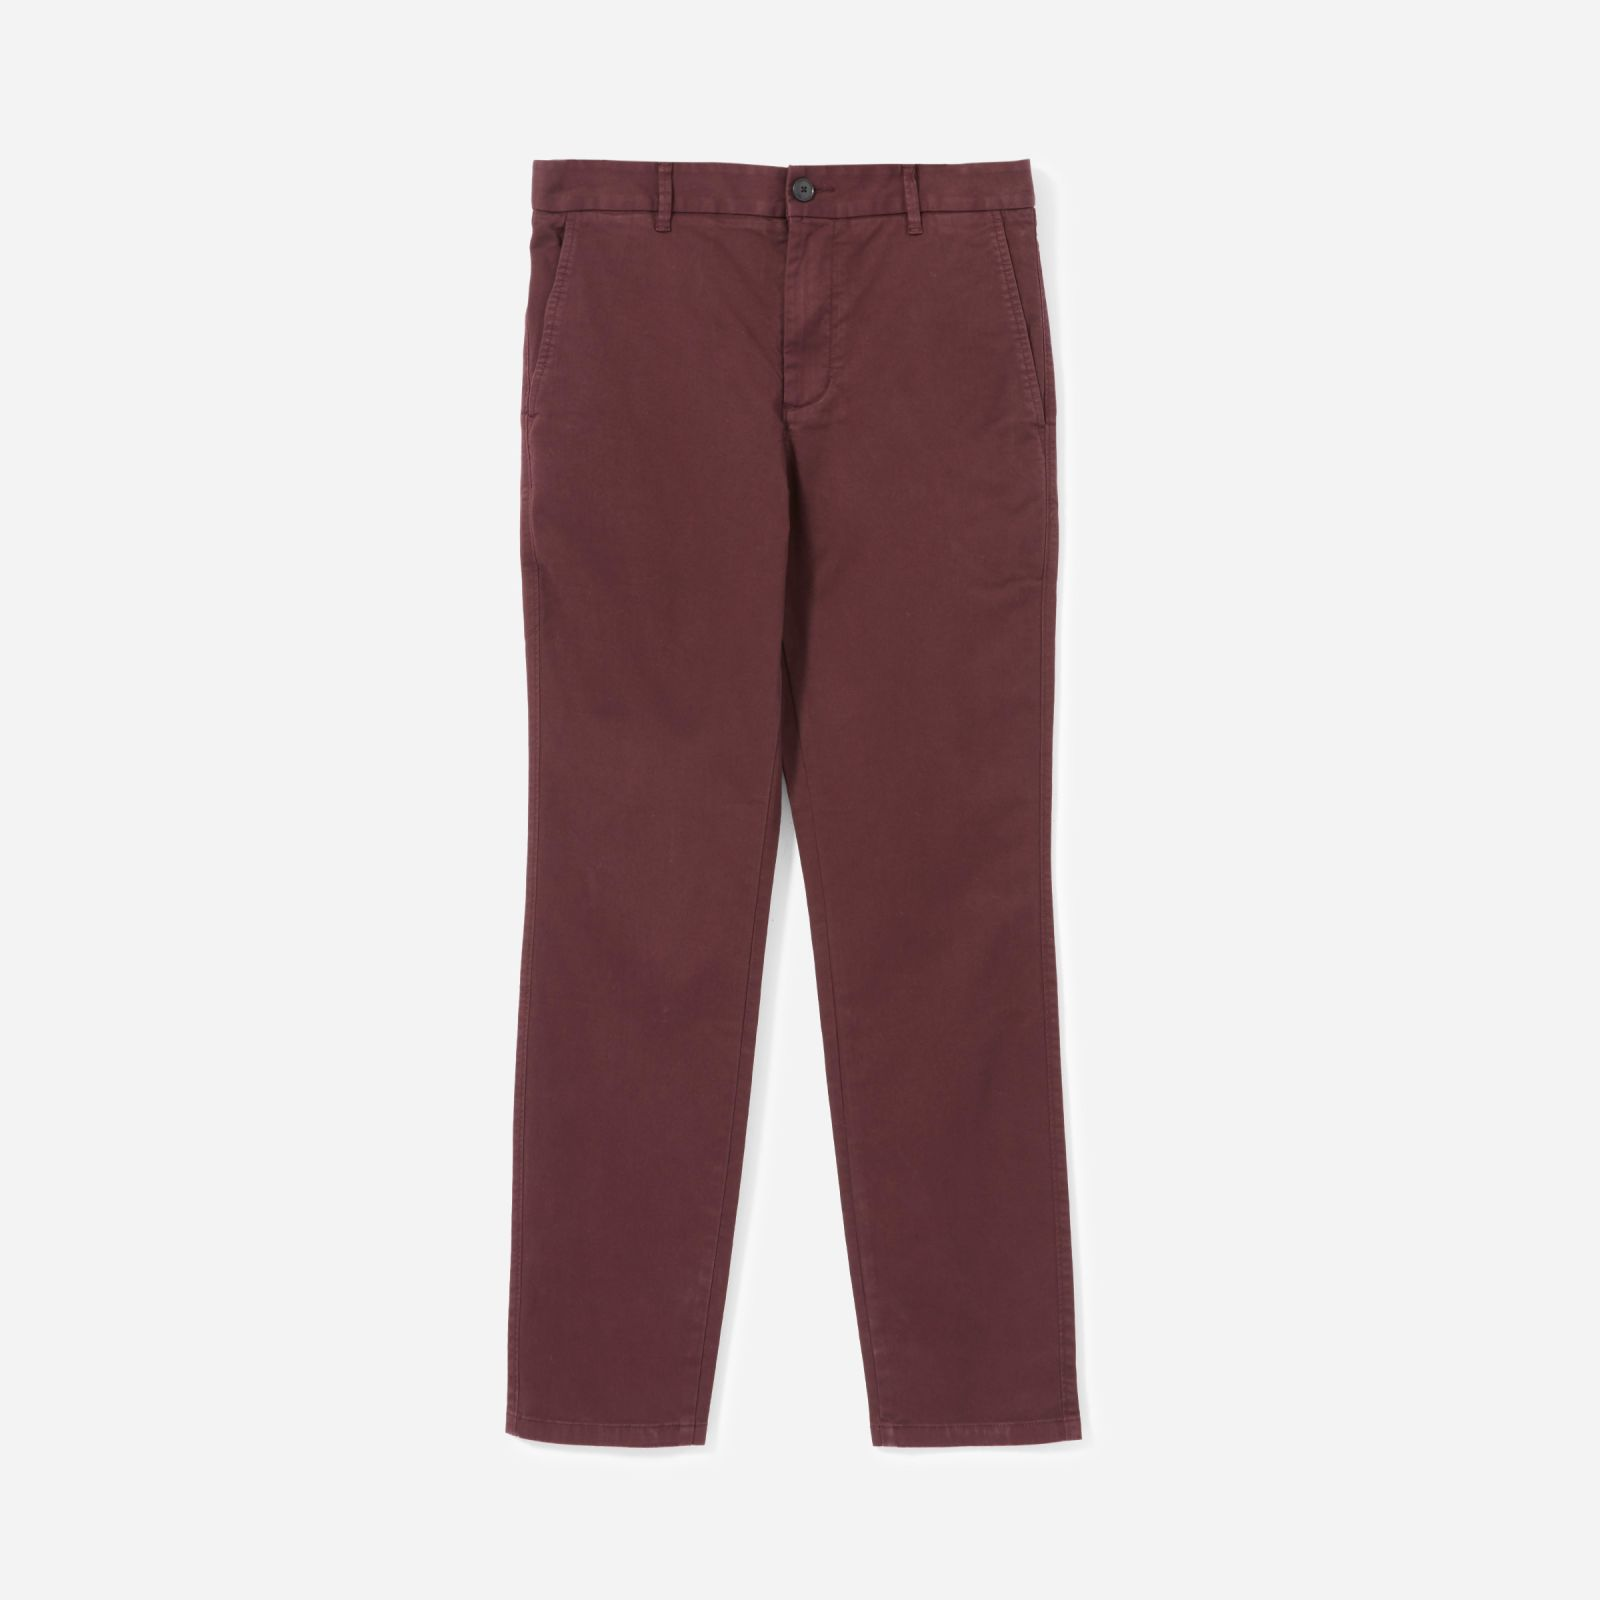 men's heavyweight athletic chino by everlane in burgundy, size 38x32